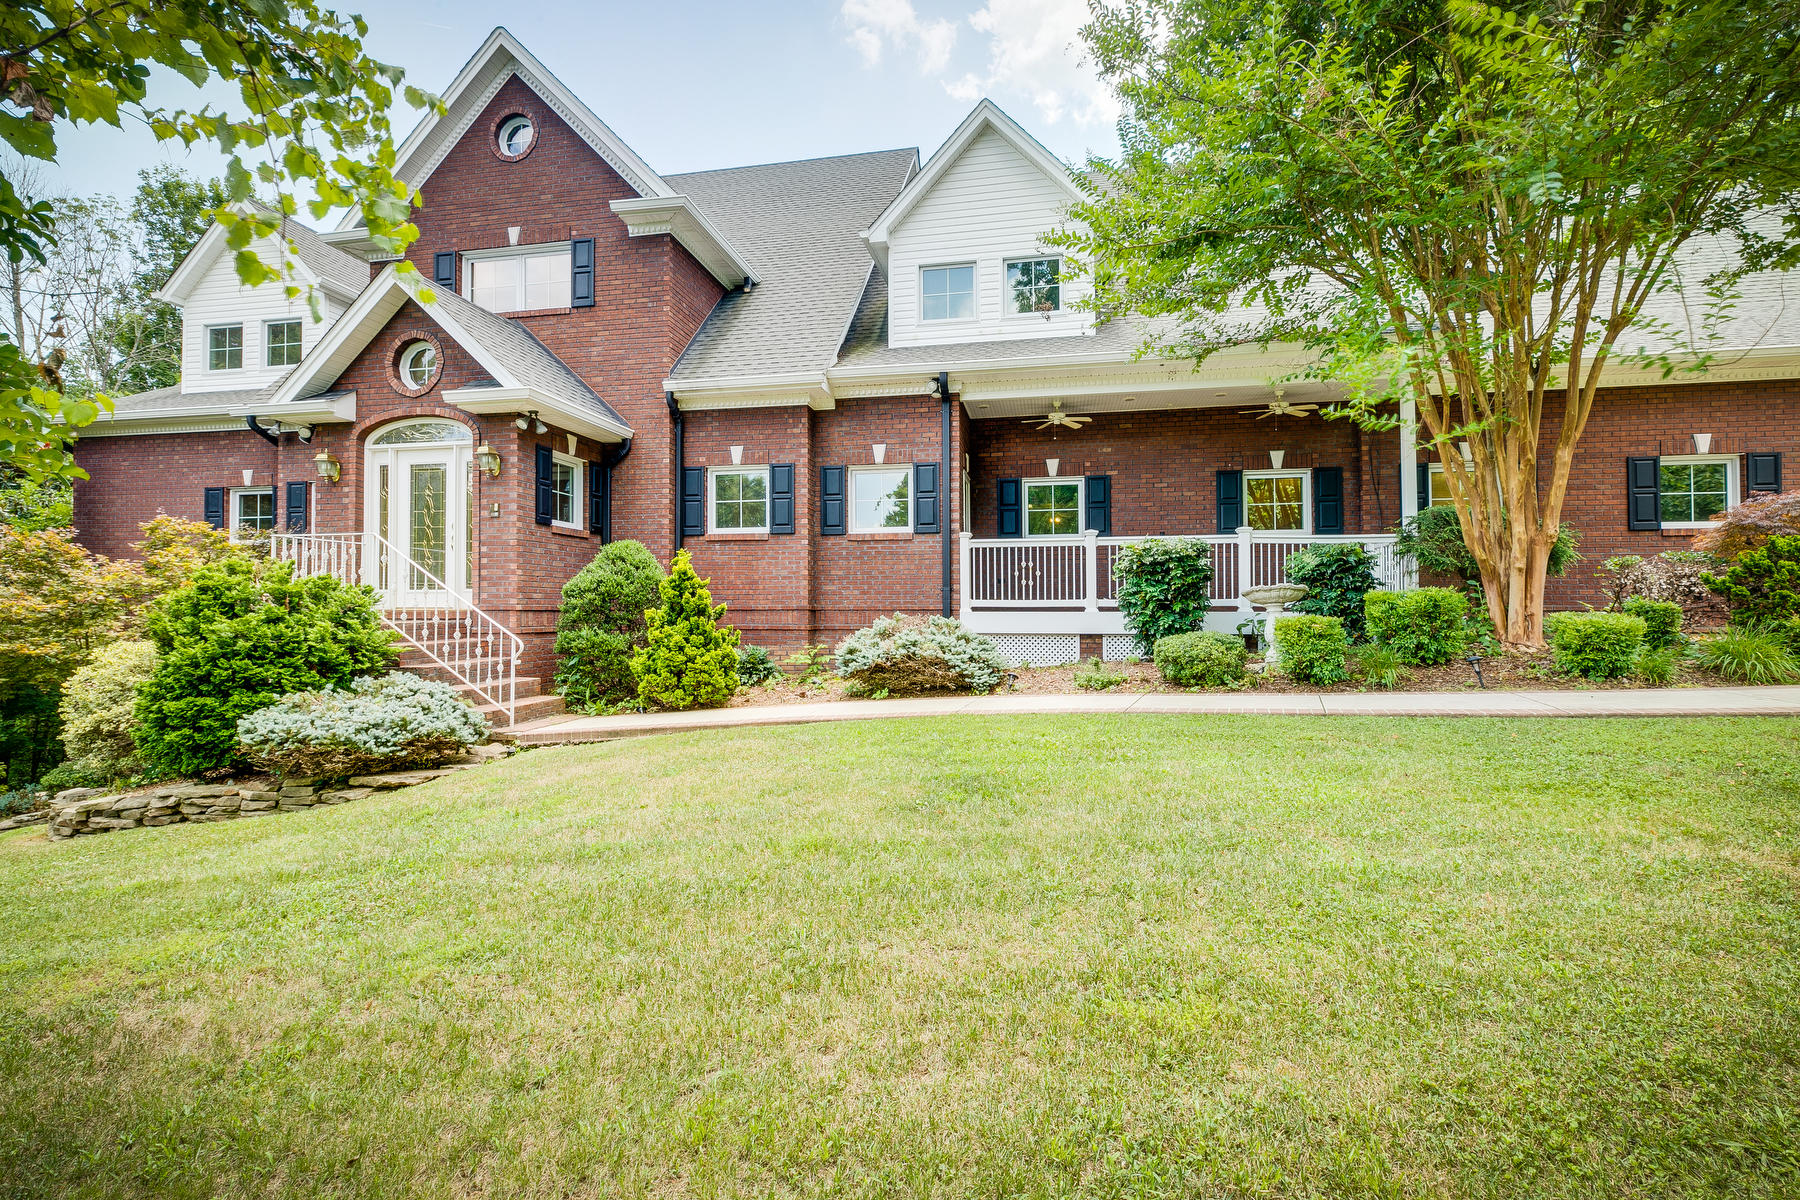 450 Woodcrest Drive, Kingsport, Tennessee